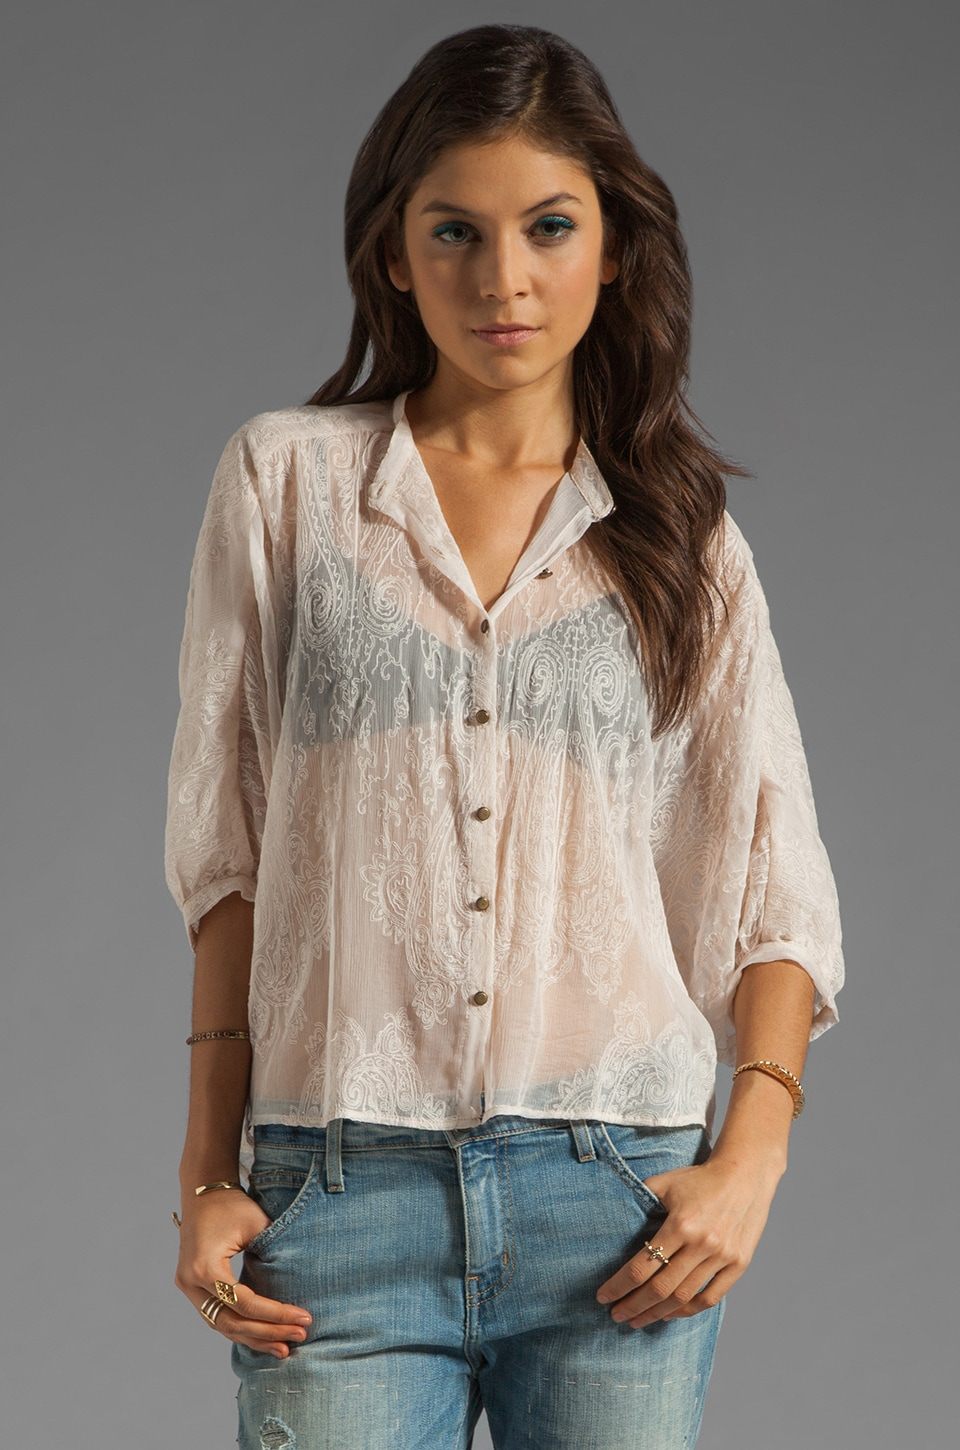 Twelfth Street By Cynthia Vincent Exaggerated High-Low Shirt in Cream